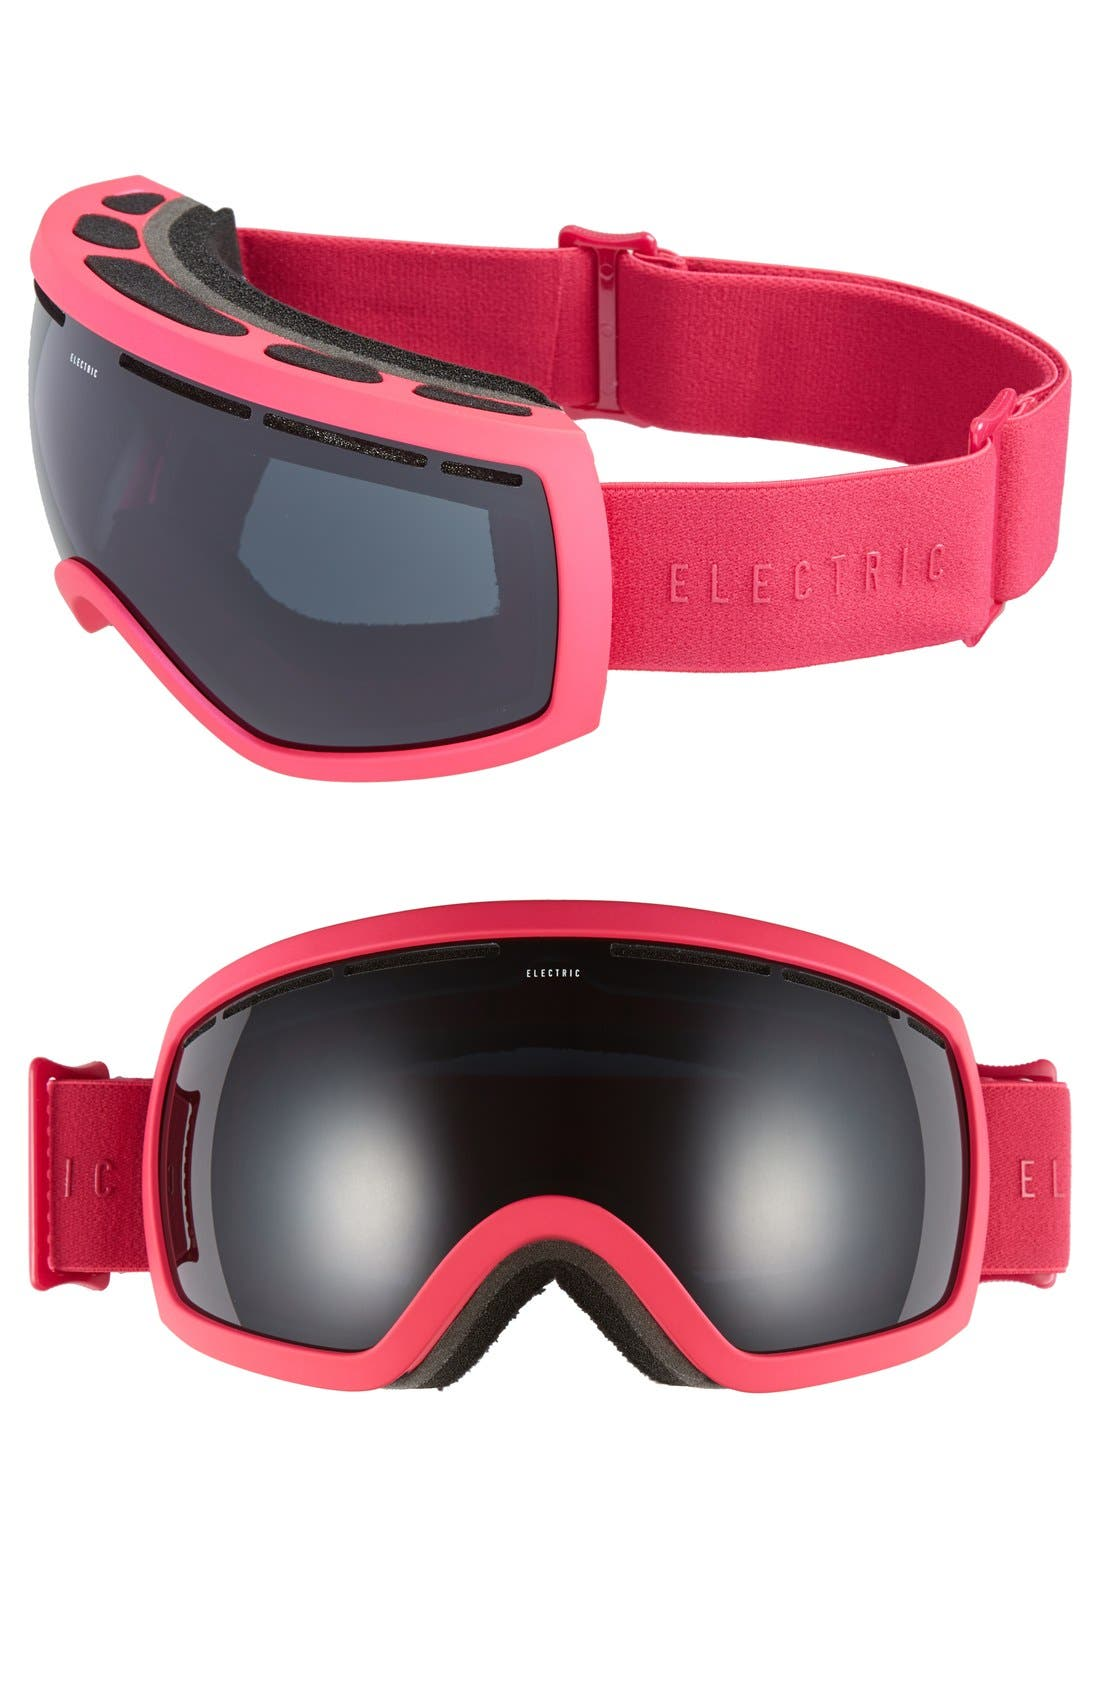 EG 2.5 215mm Snow Goggles,                         Main,                         color, Solid Berry/ Jet Black